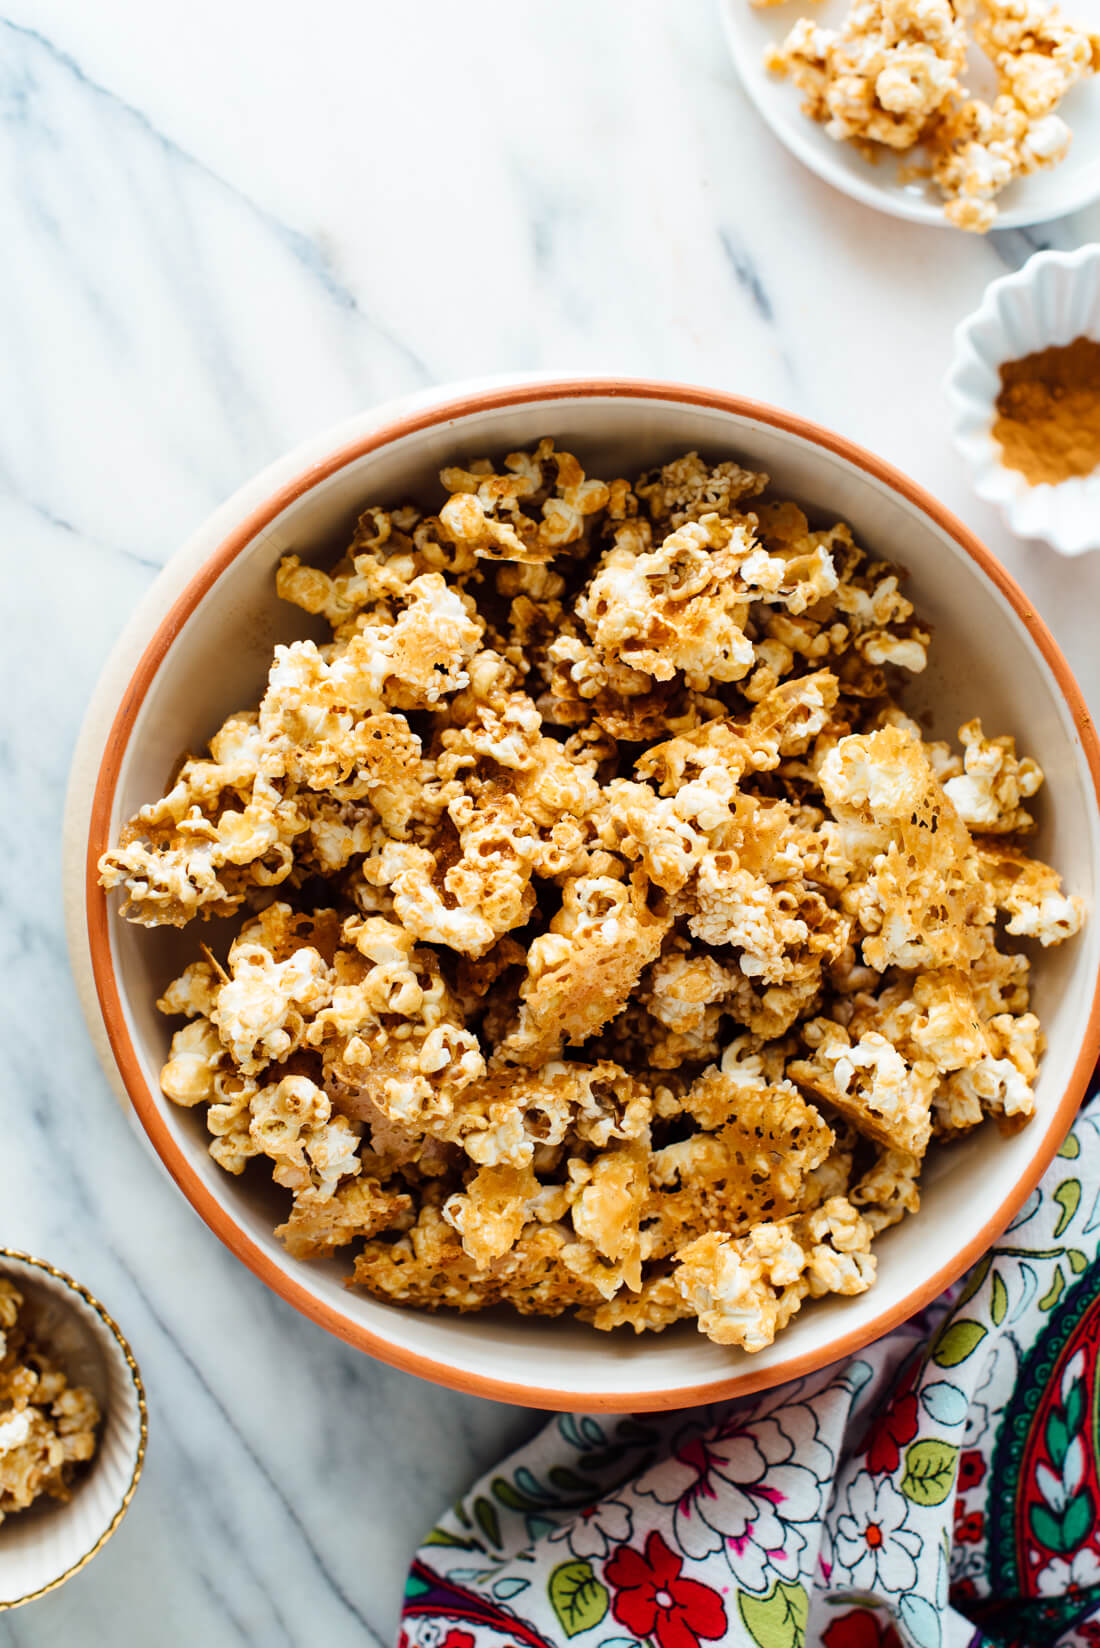 naturally sweetened caramel popcorn recipe made with tahini and maple syrup. #vegan #nutfree #naturallysweetened